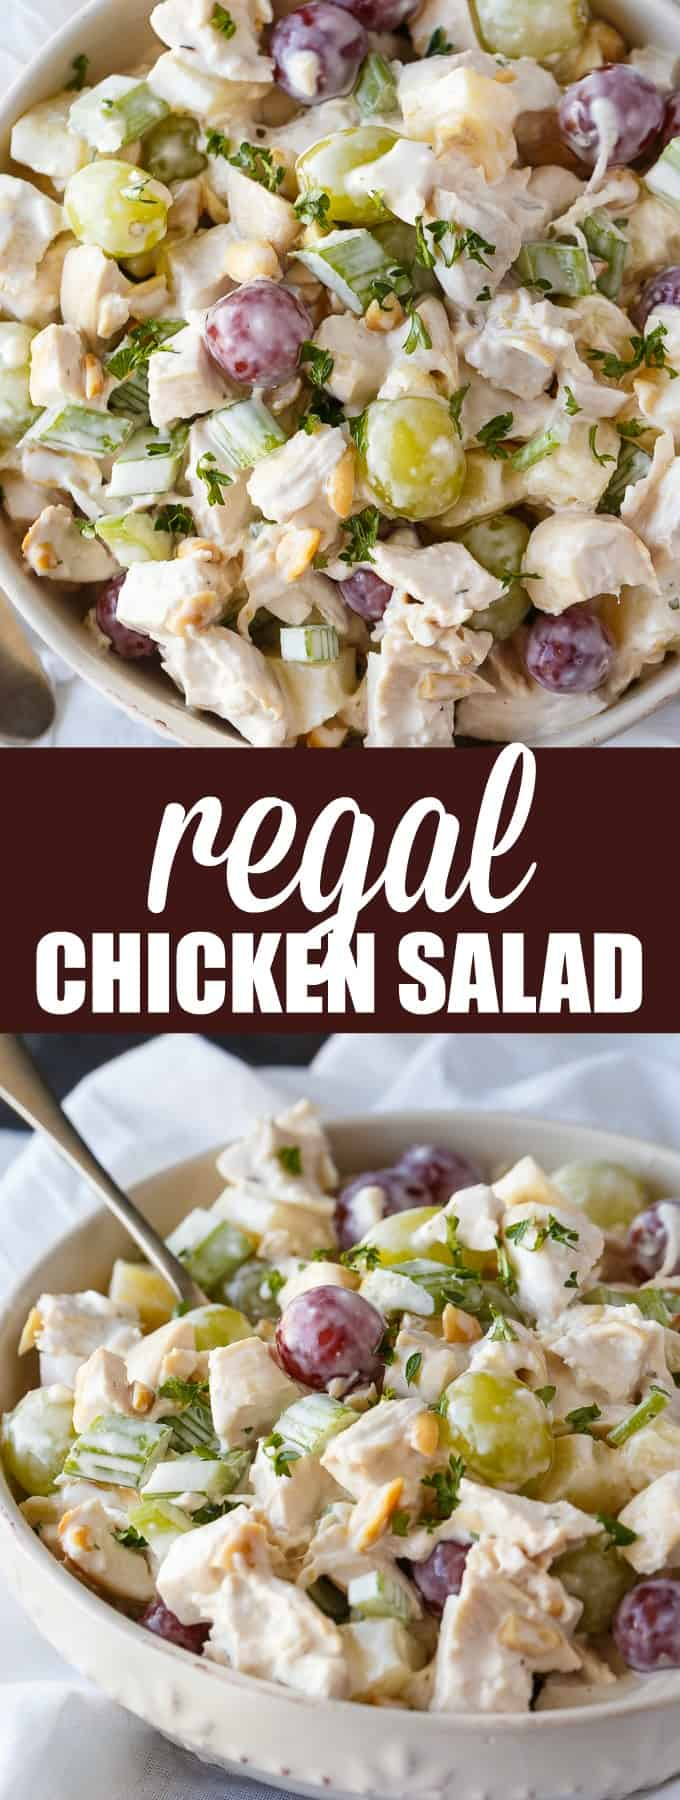 Regal Chicken Salad - My husband says this is the BEST chicken salad ever! It's loaded with tender chicken, grapes, celery, pineapple and tossed in a slightly sweet creamy dressing.